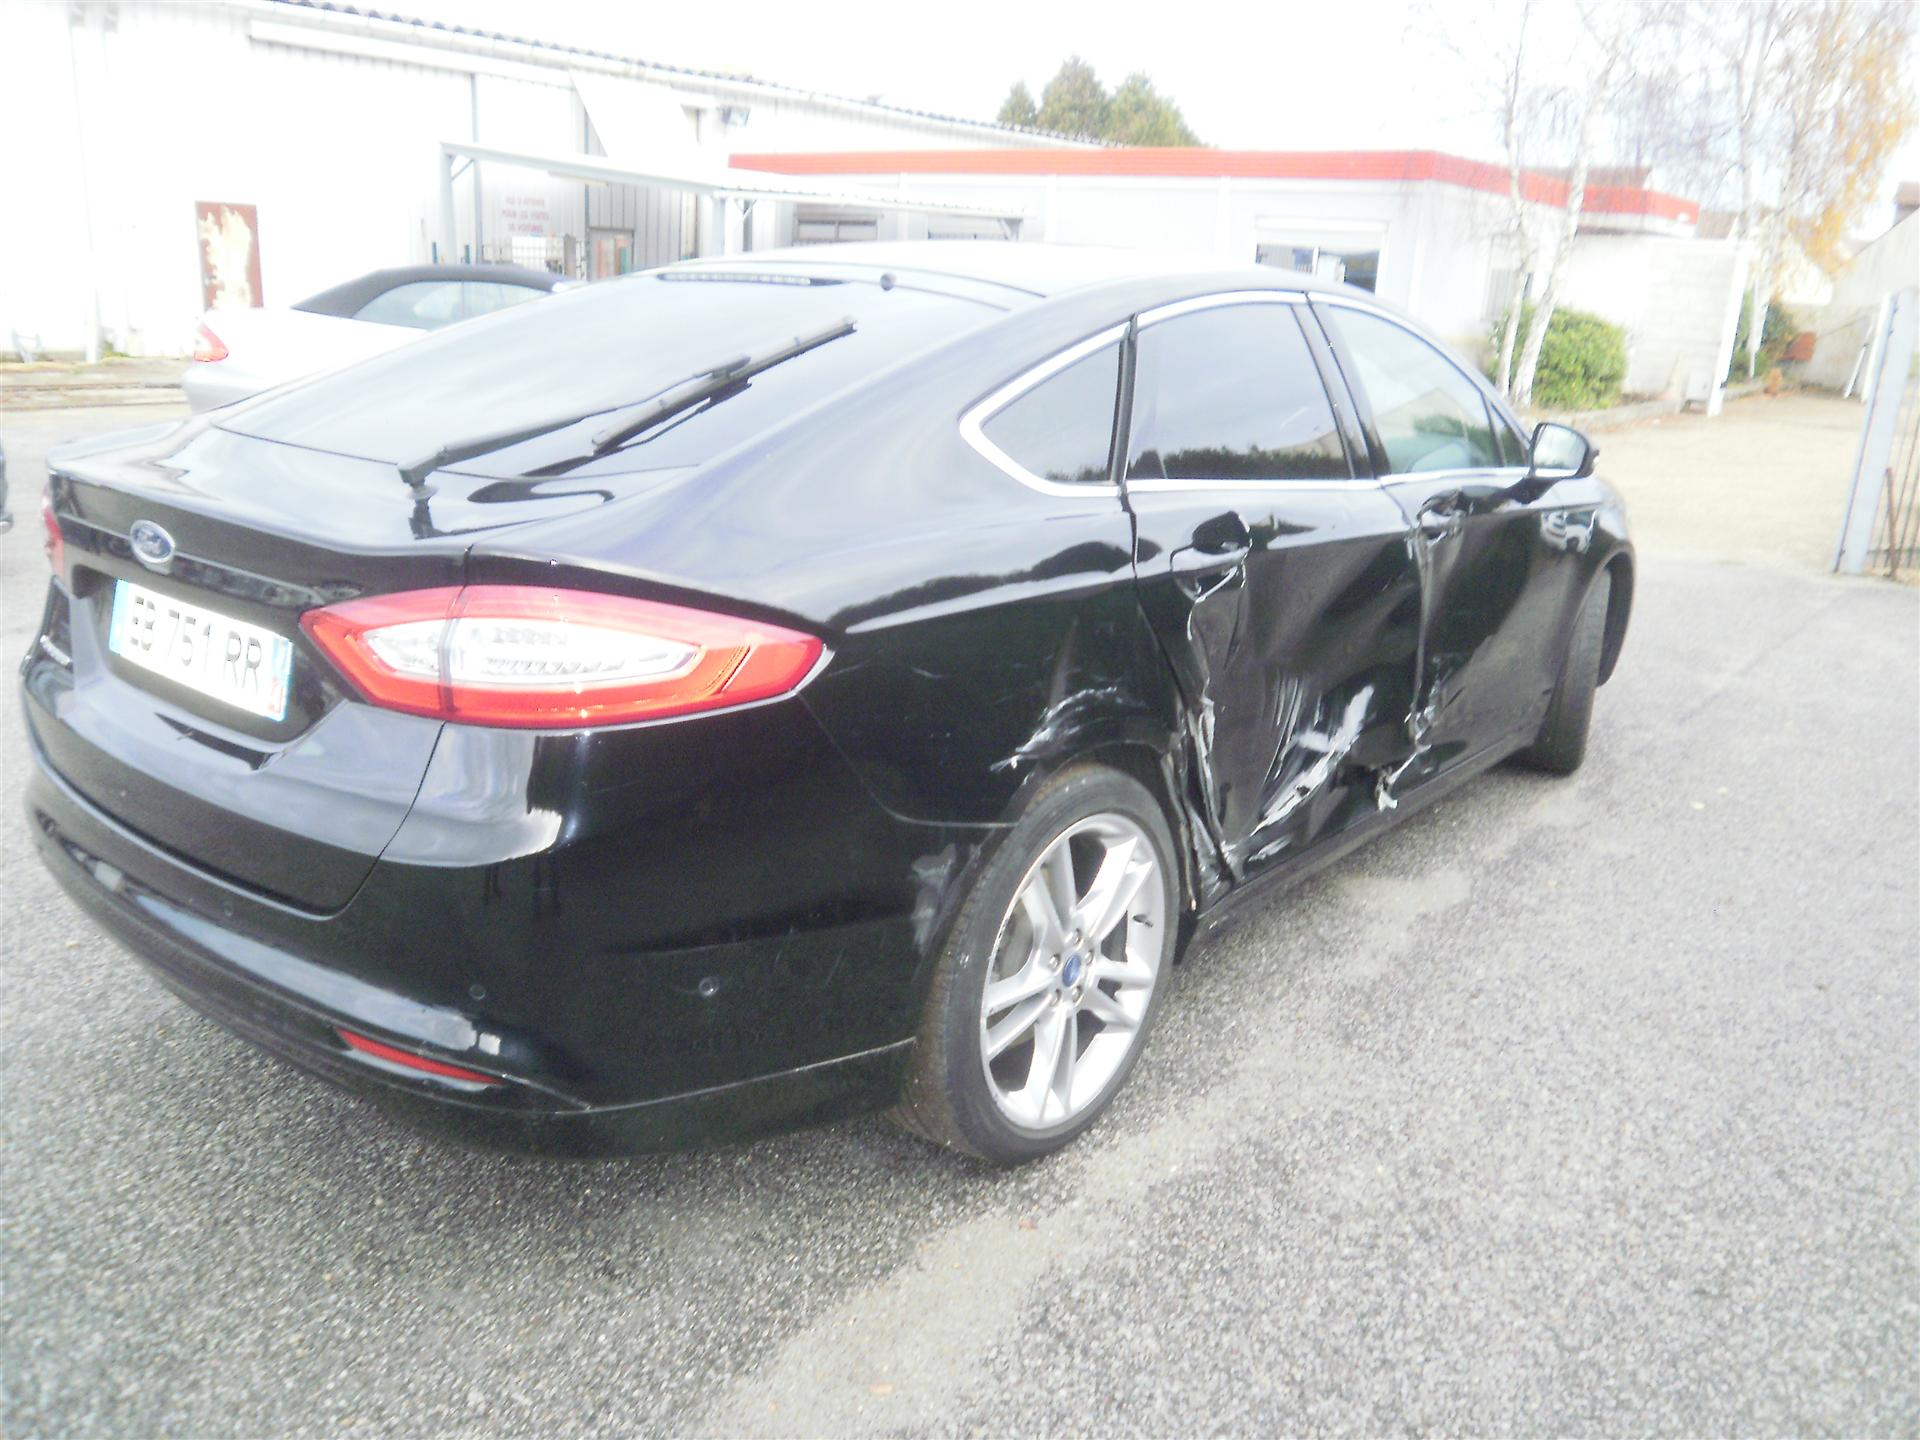 FORD MONDEO 2.0 TDCI  150 CH 5 PTES  2016